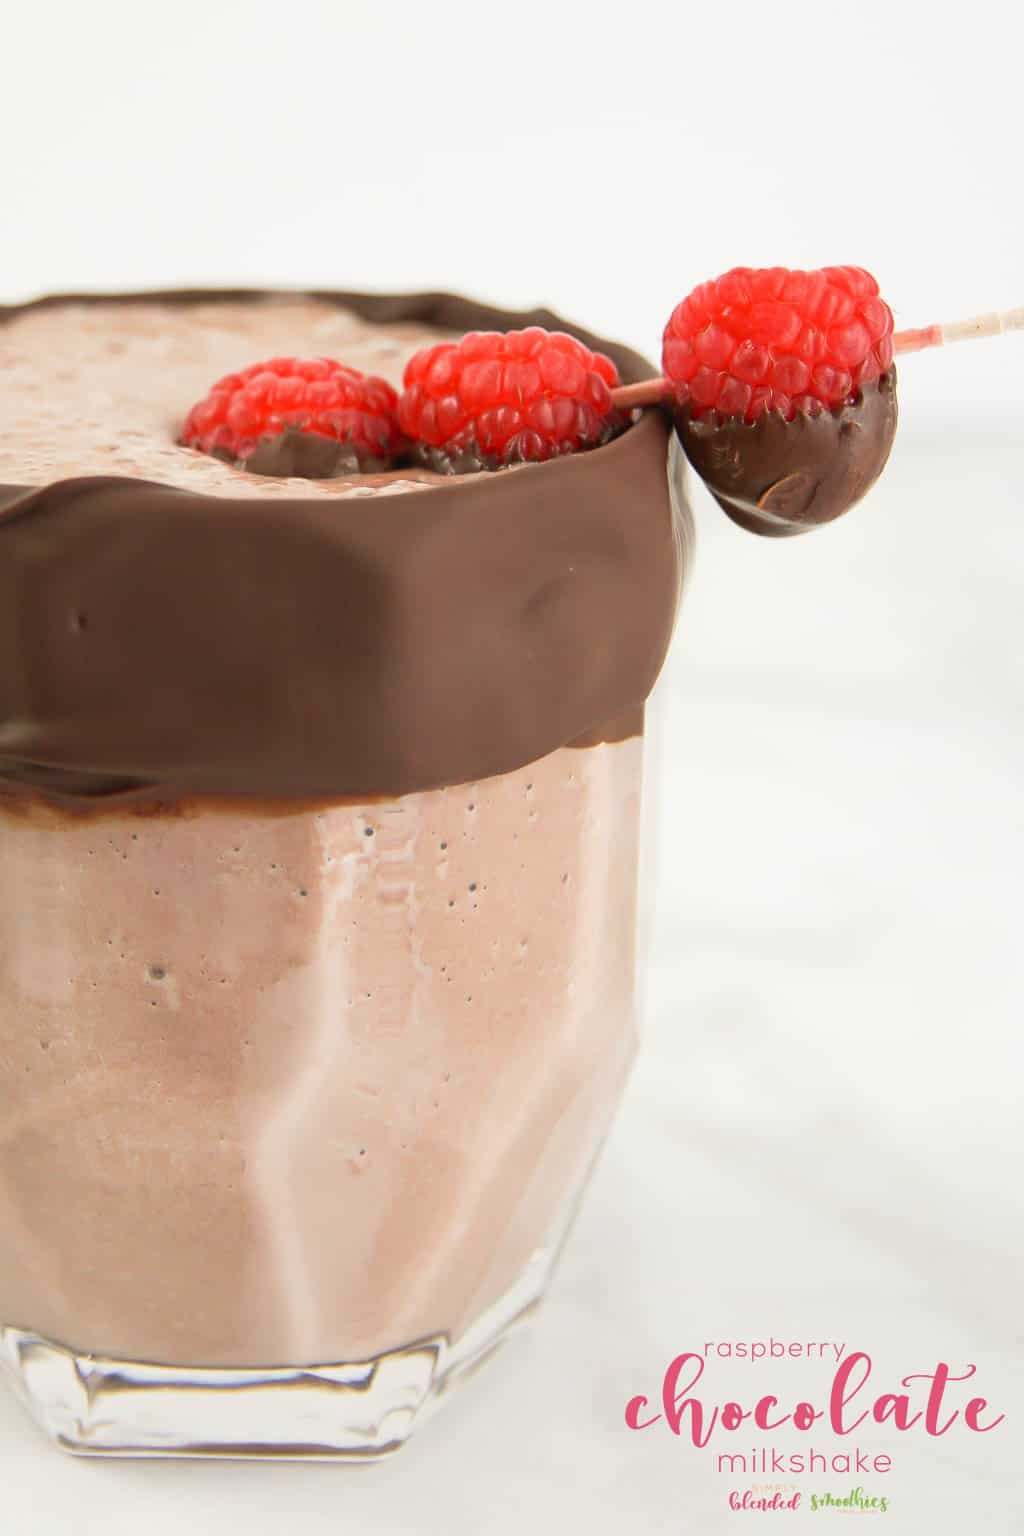 Raspberry Chocolate Milkshake